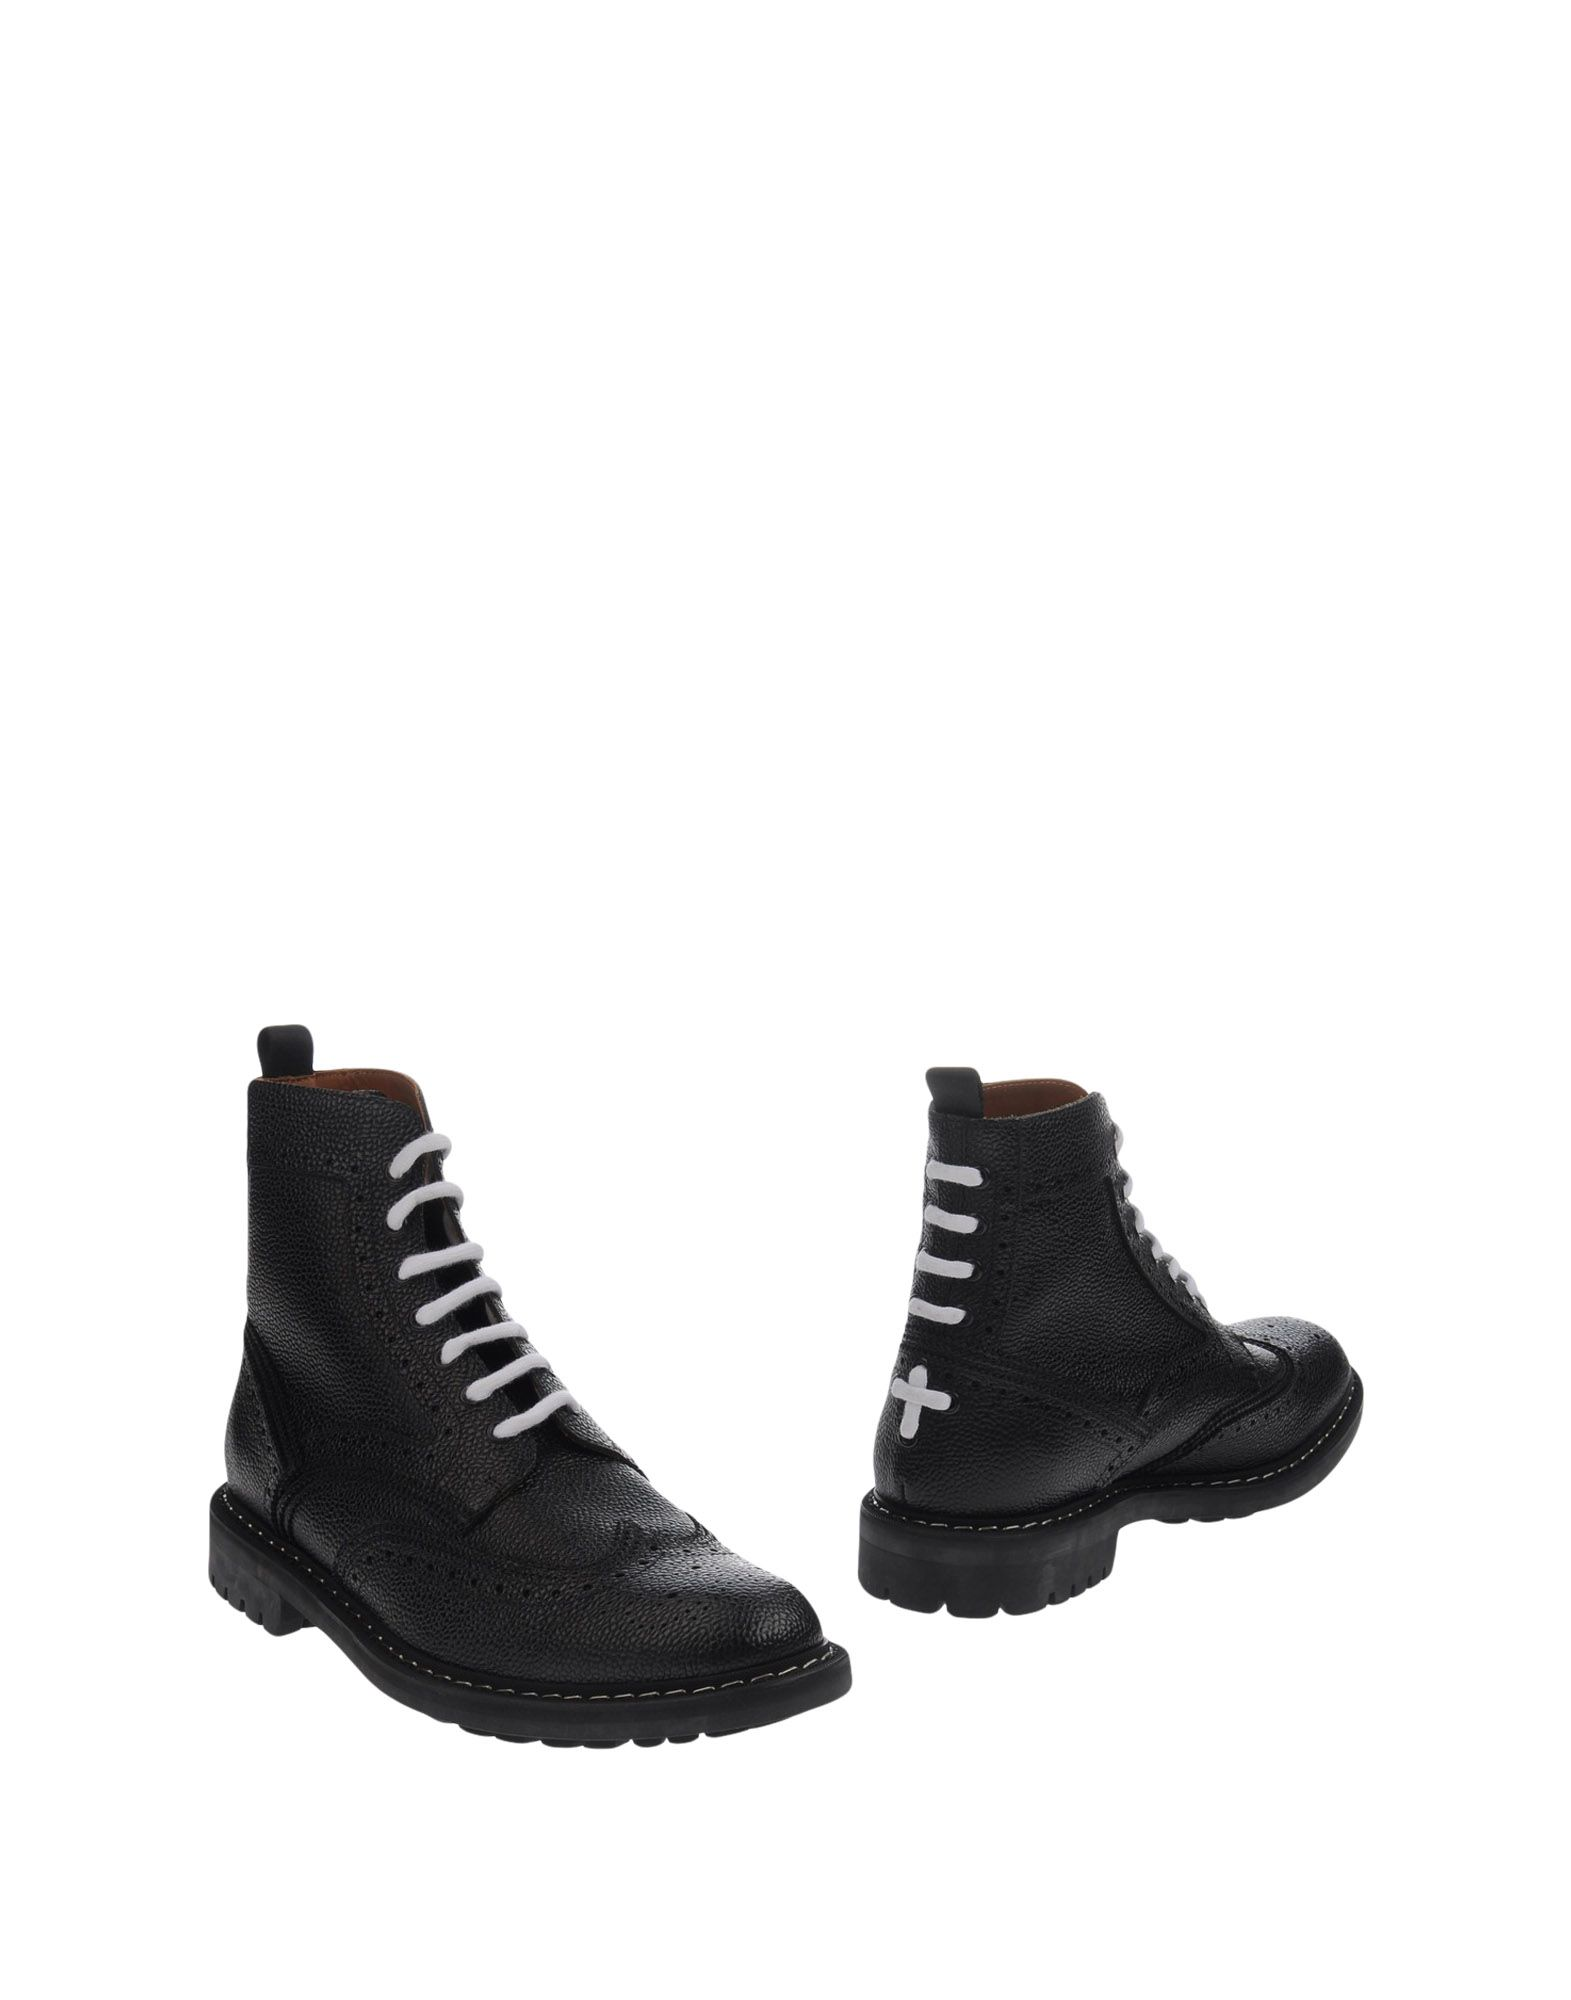 Givenchy Boots - - - Men Givenchy Boots online on  United Kingdom - 11237041BV 65e9a1